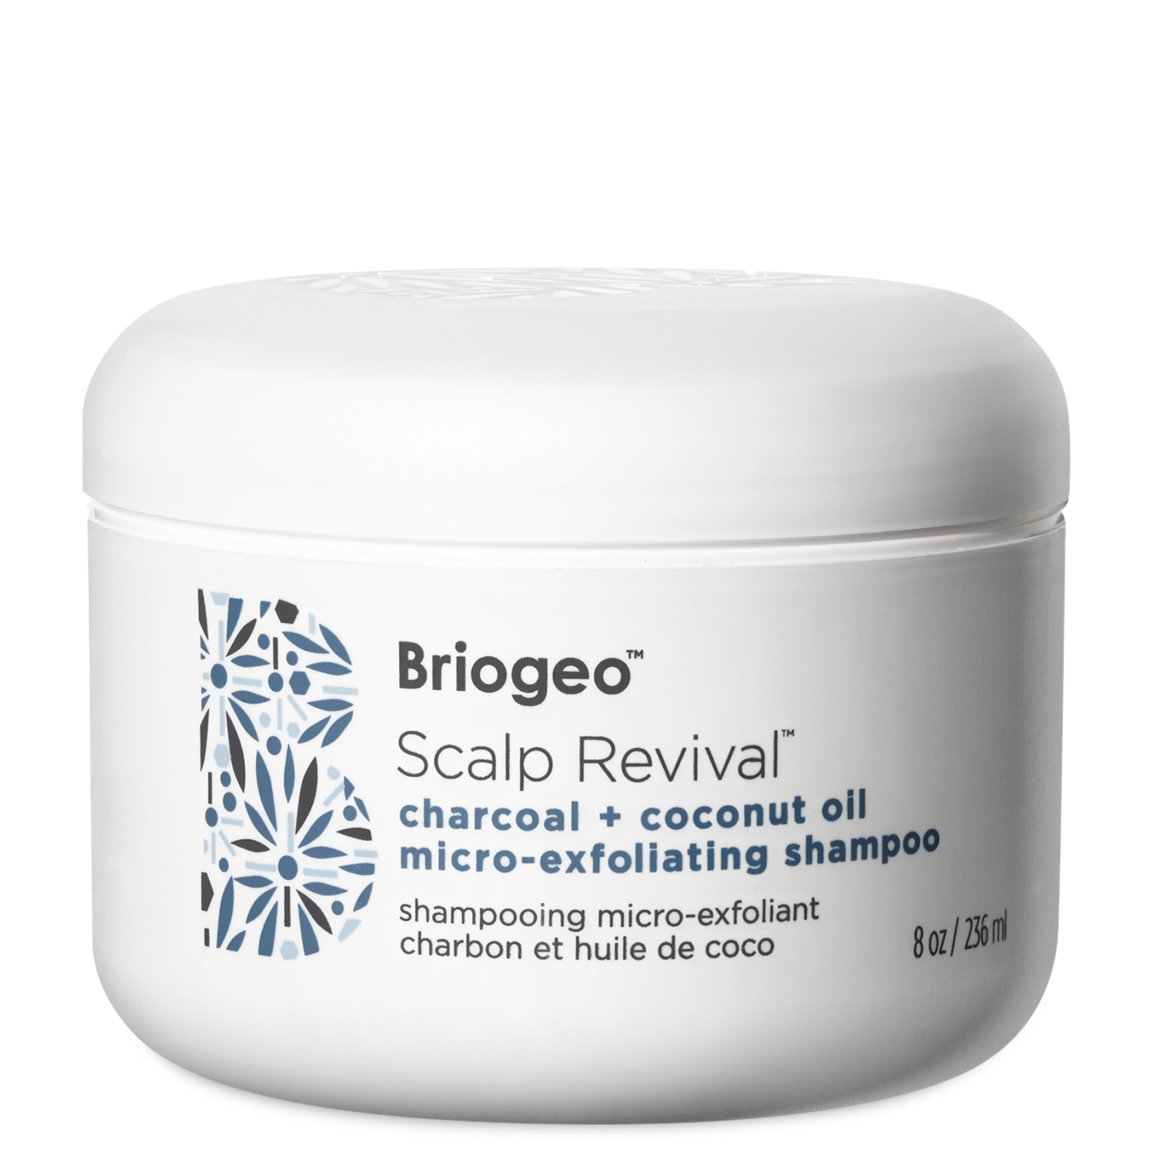 Briogeo Scalp Revival Charcoal + Coconut Oil Micro-Exfoliating Shampoo 8 oz alternative view 1 - product swatch.